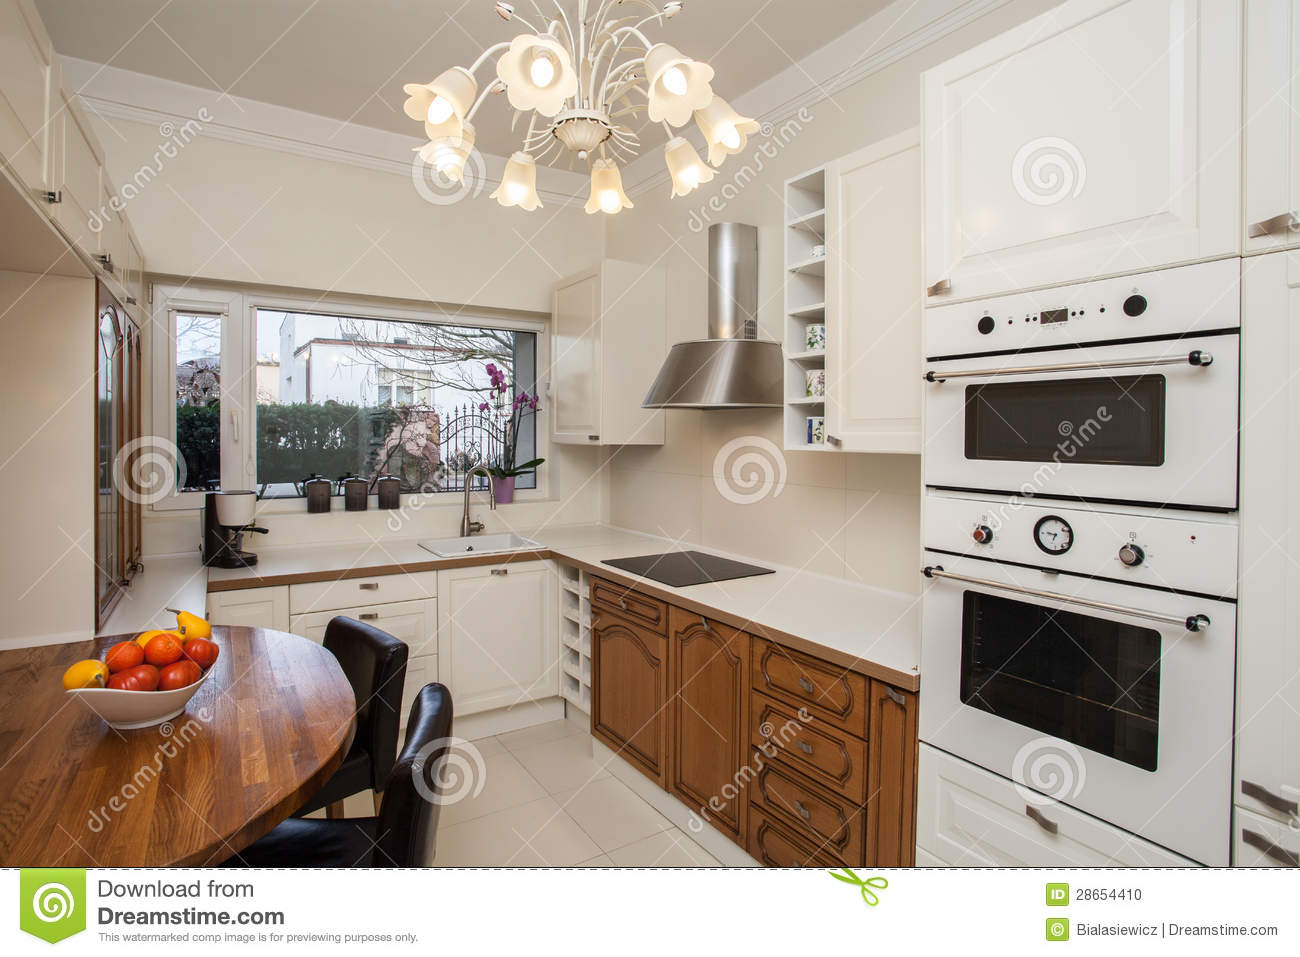 Cloudy home - practical kitchen